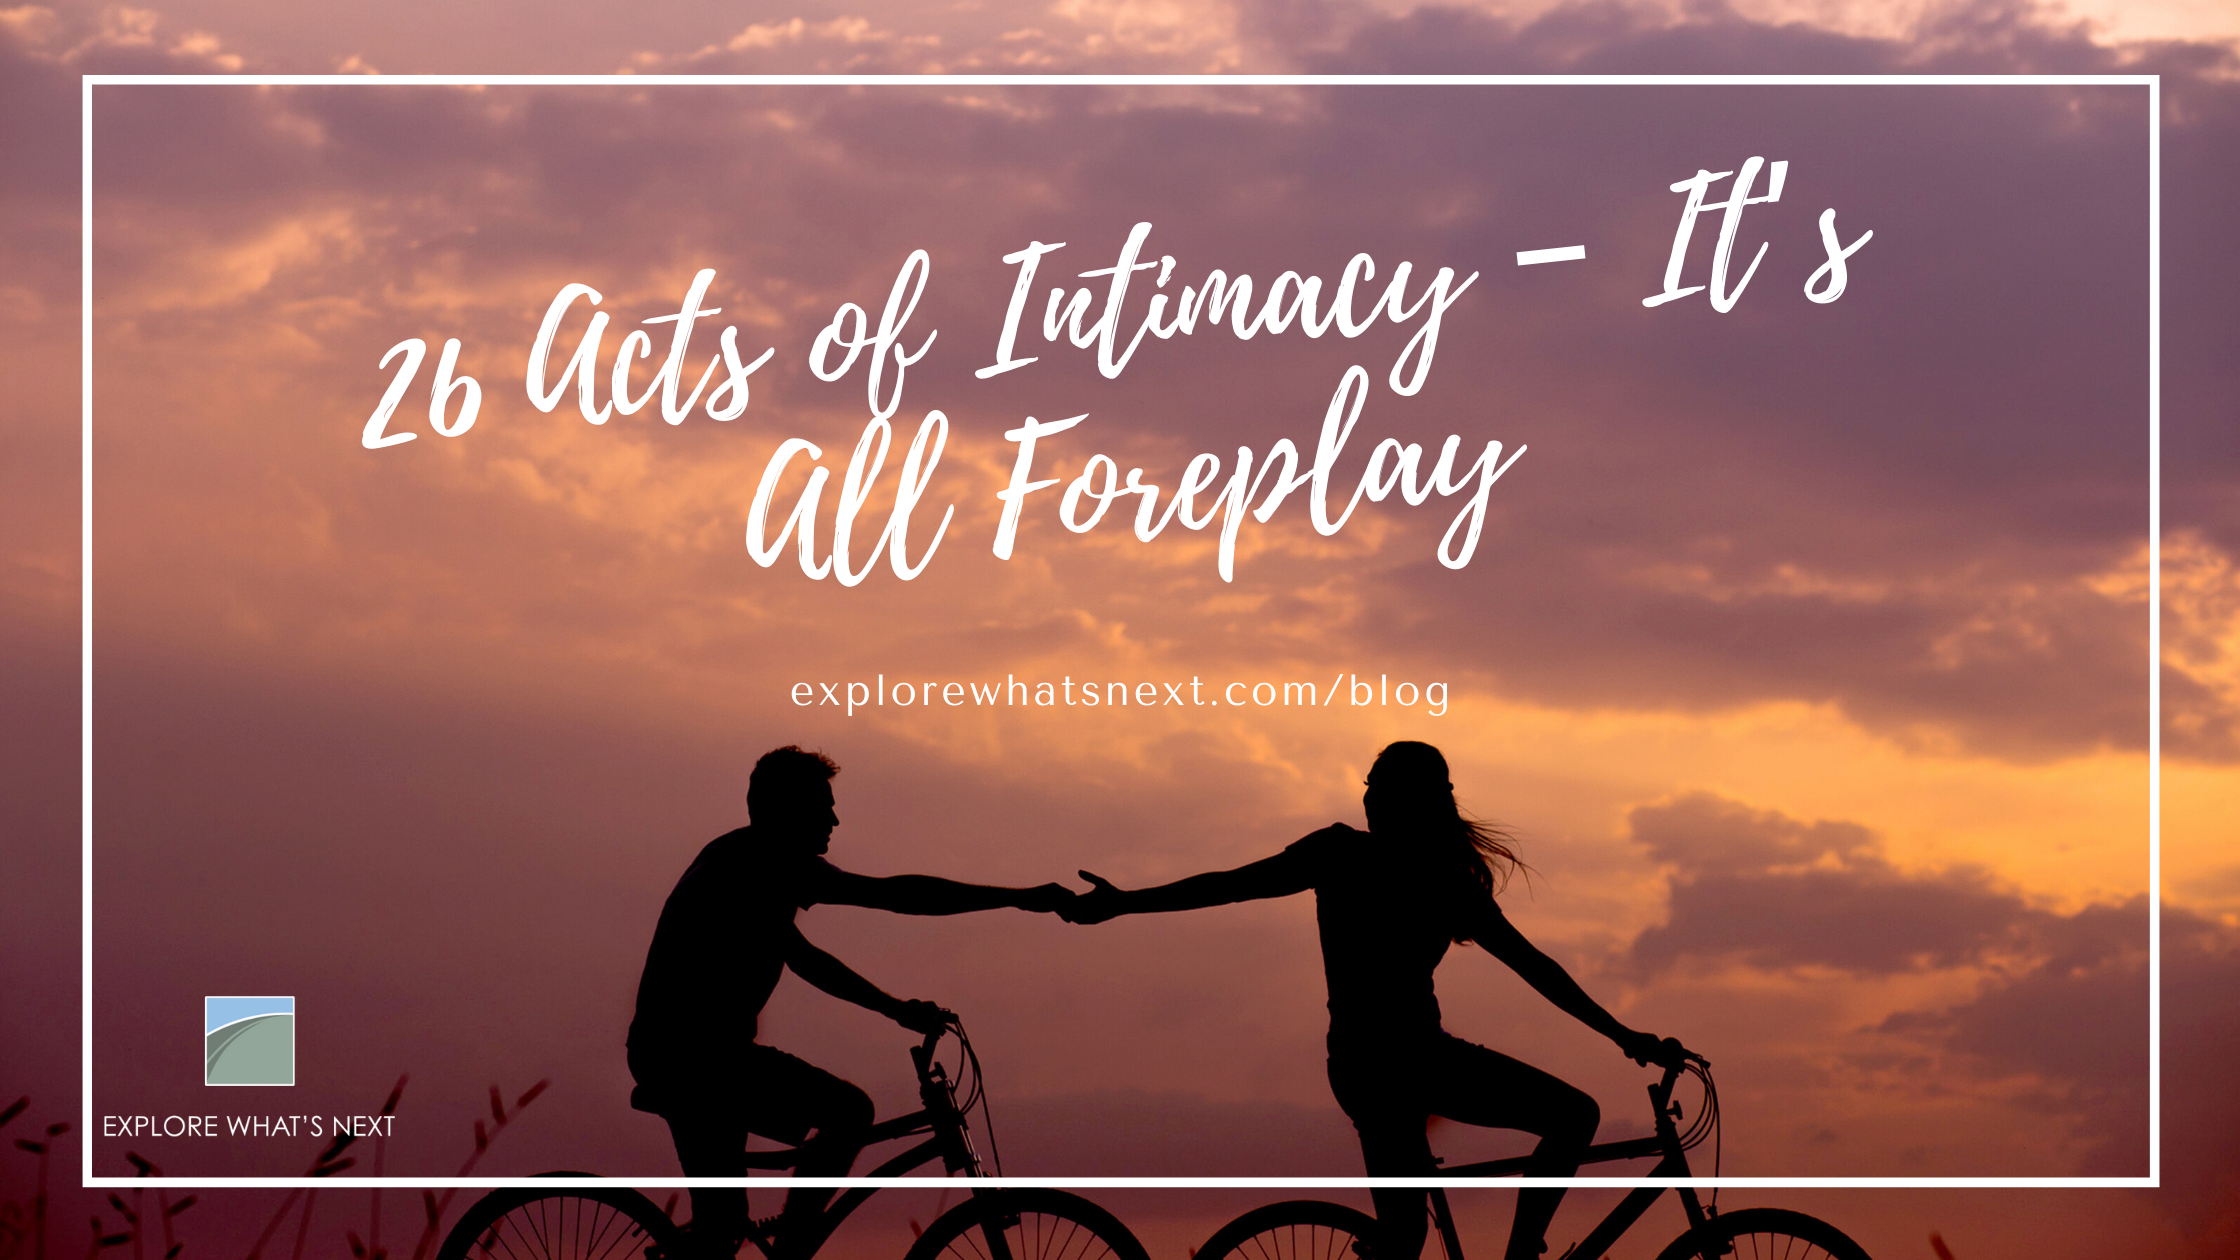 26 Acts of Intimacy – It's All Foreplay